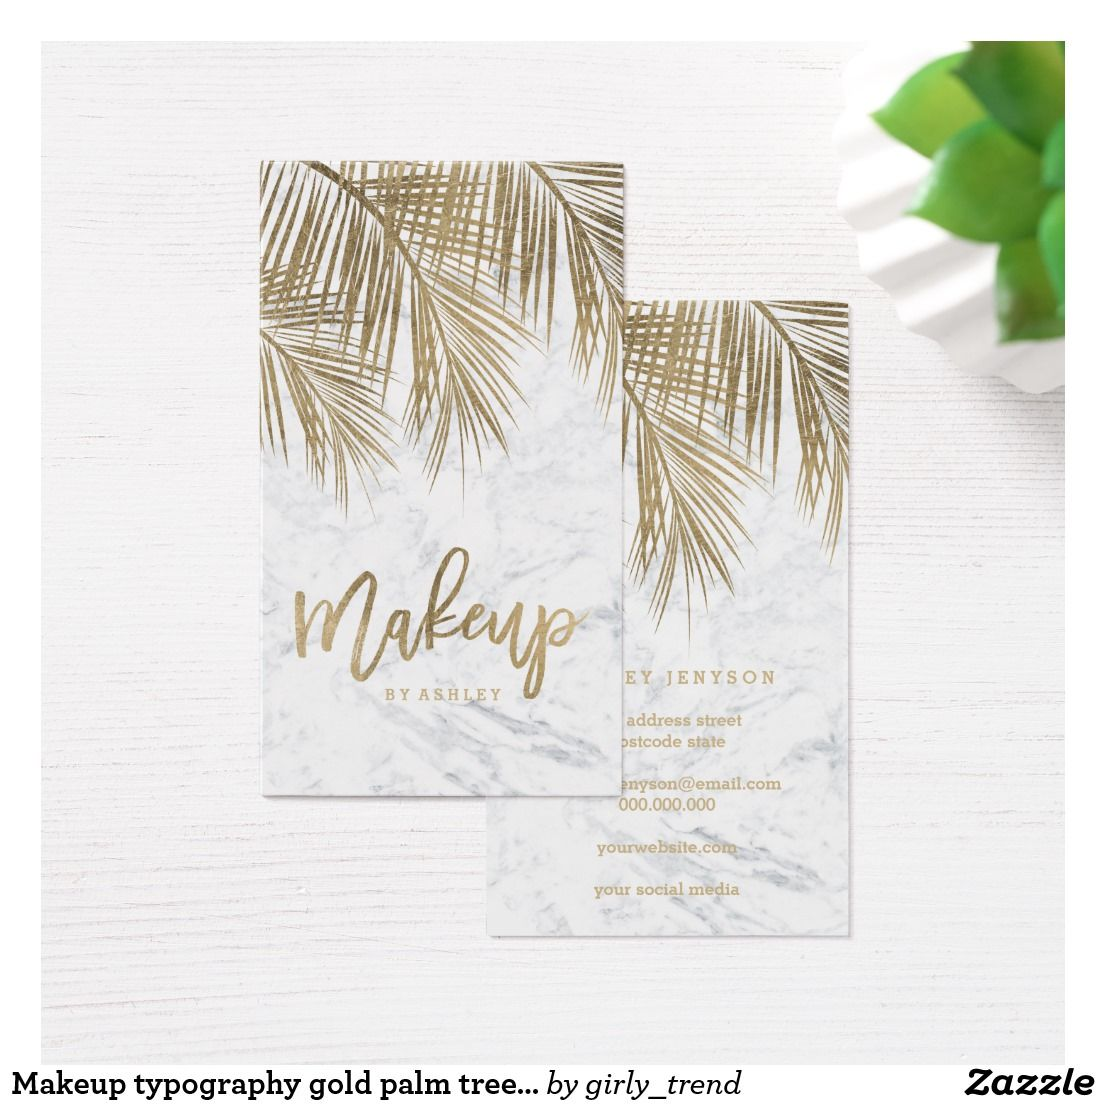 Makeup typography gold palm tree leaf marble business card palm makeup typography gold palm tree leaf marble business card colourmoves